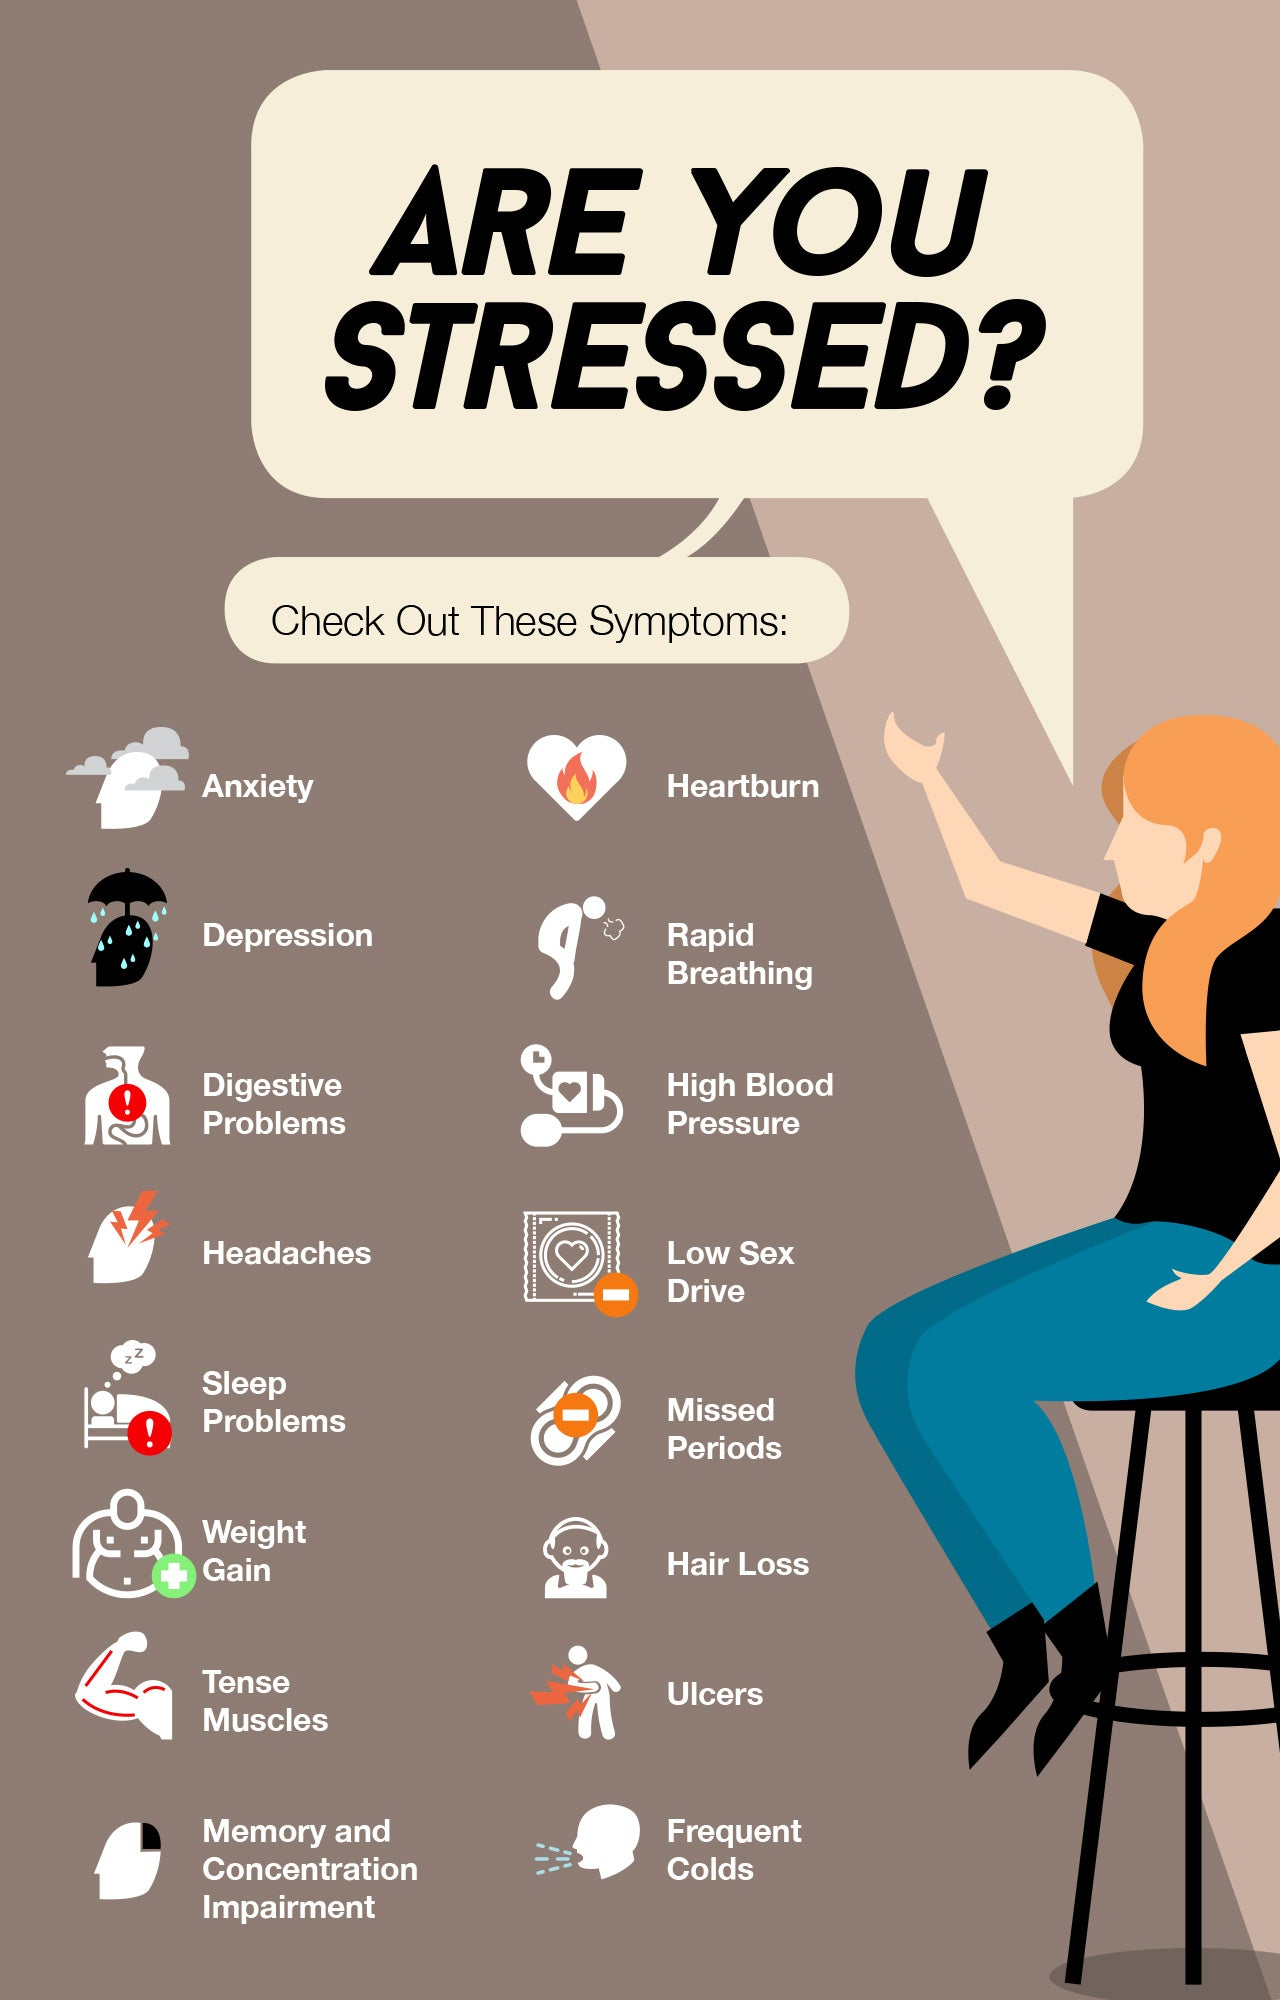 How to know if you're stressed